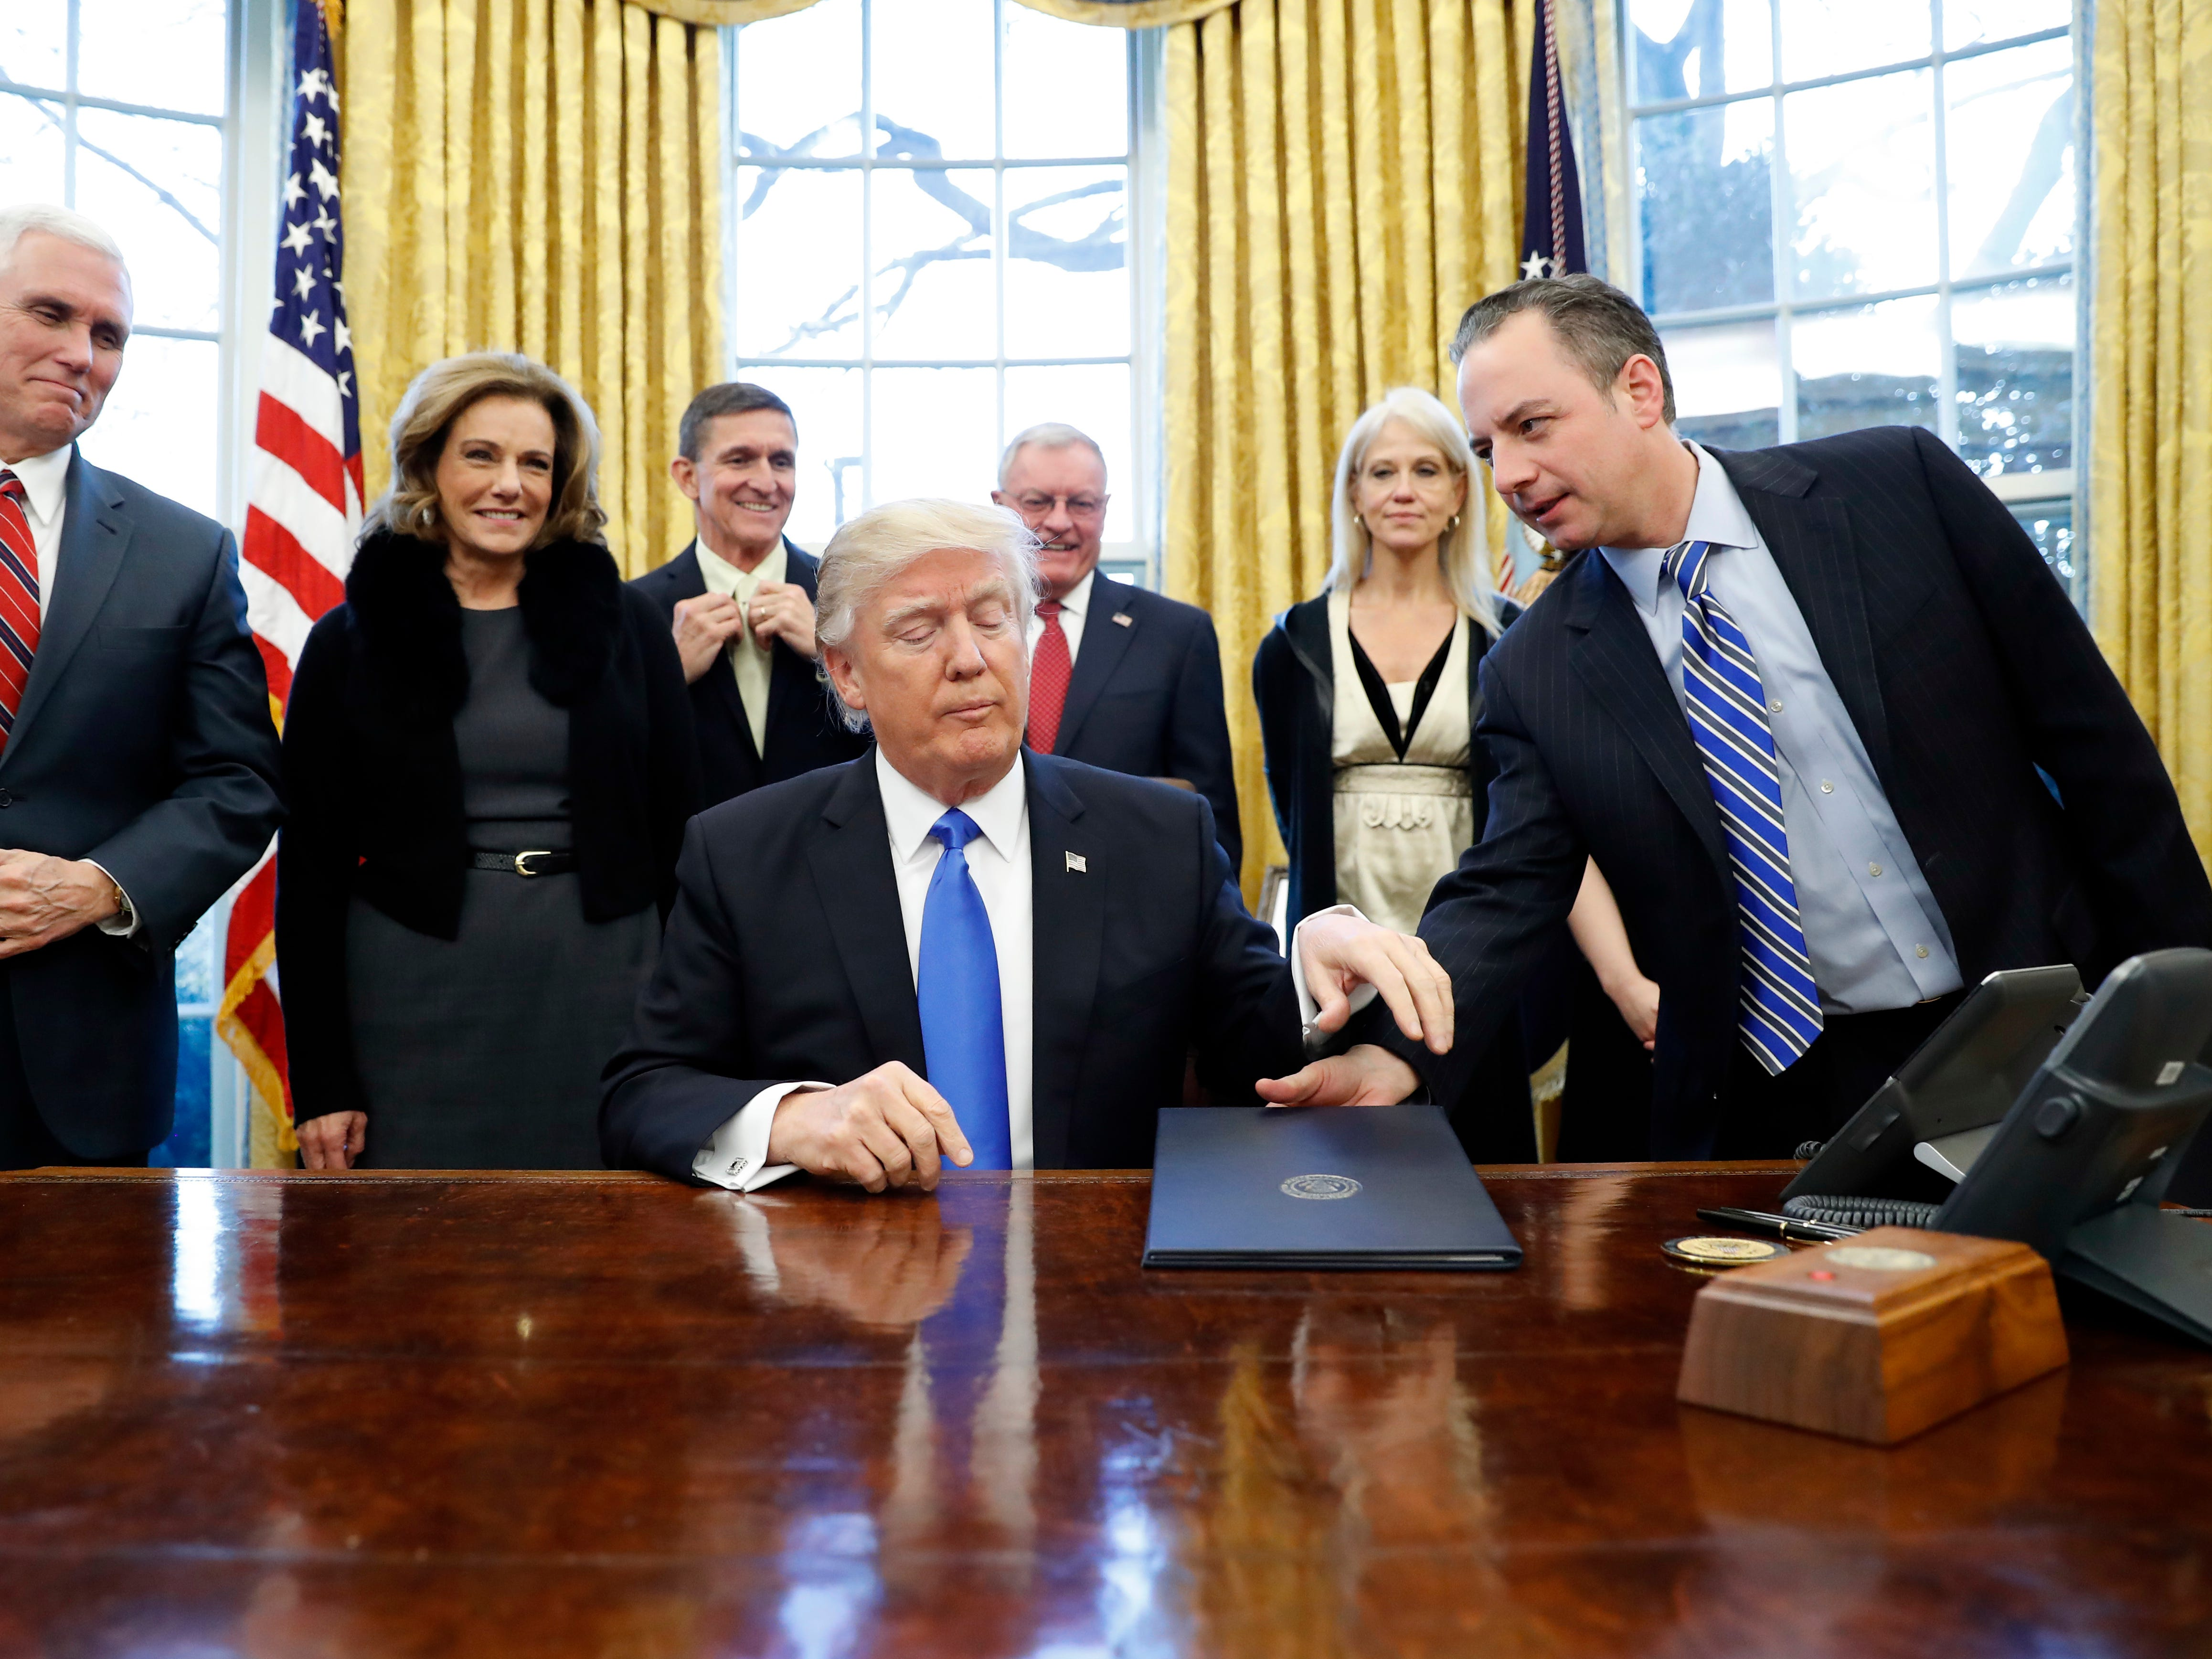 President Donald Trump is handed an Executive Order to sign by White House Chief of Staff Reince Priebus (right), with Vice President Mike Pence (left), and others nearby, in the Oval Office of the White House.